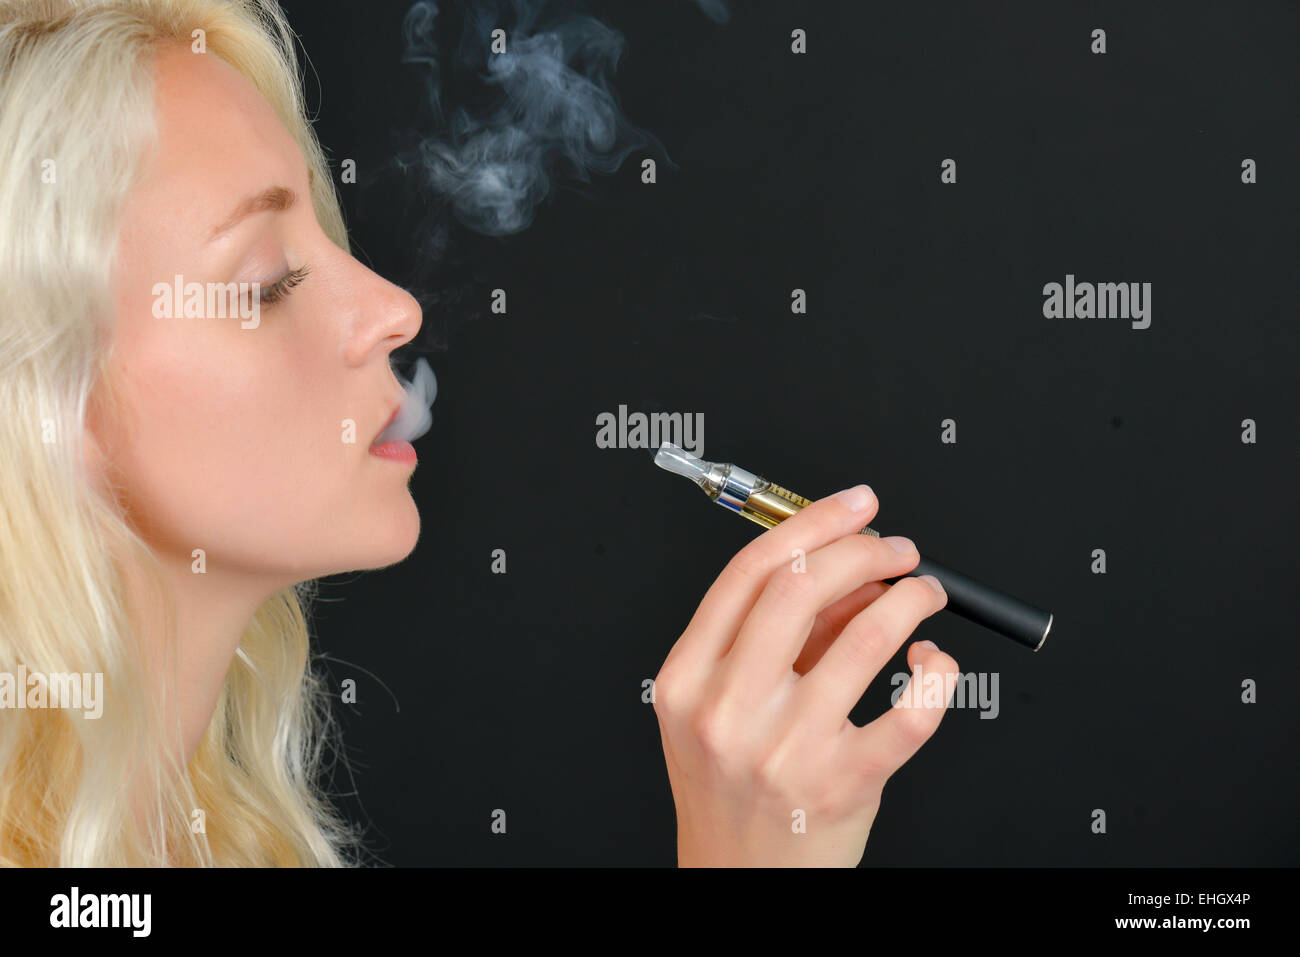 Taking a drag off an electric cigarette - Stock Image